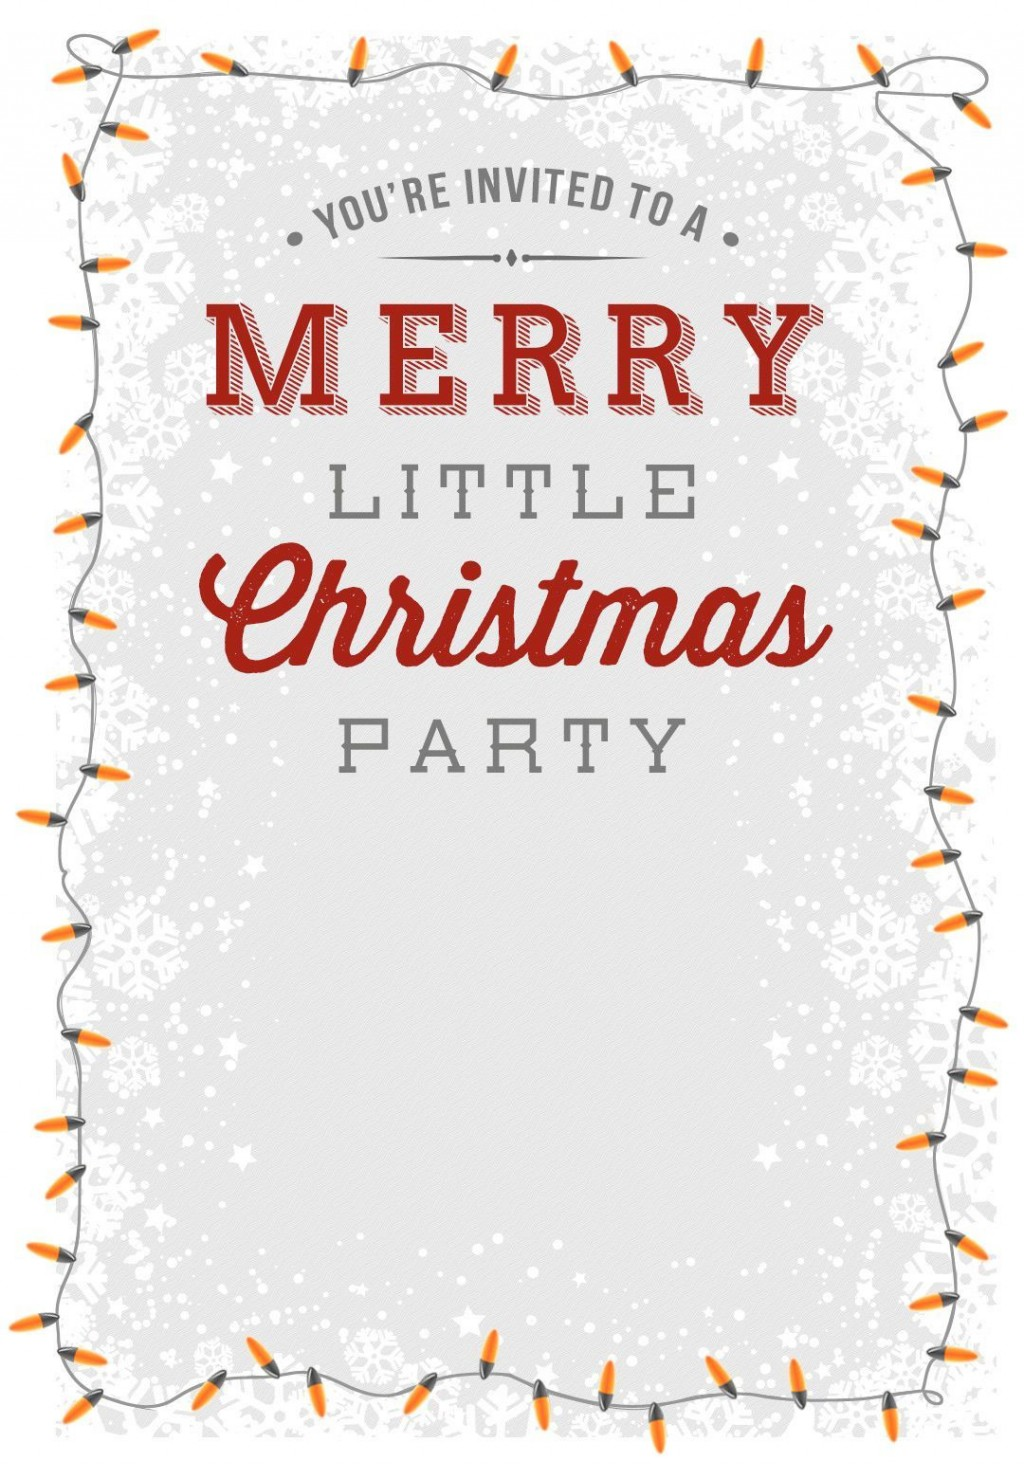 006 Fascinating Christma Party Invitation Template Idea  Holiday Download Free PsdLarge